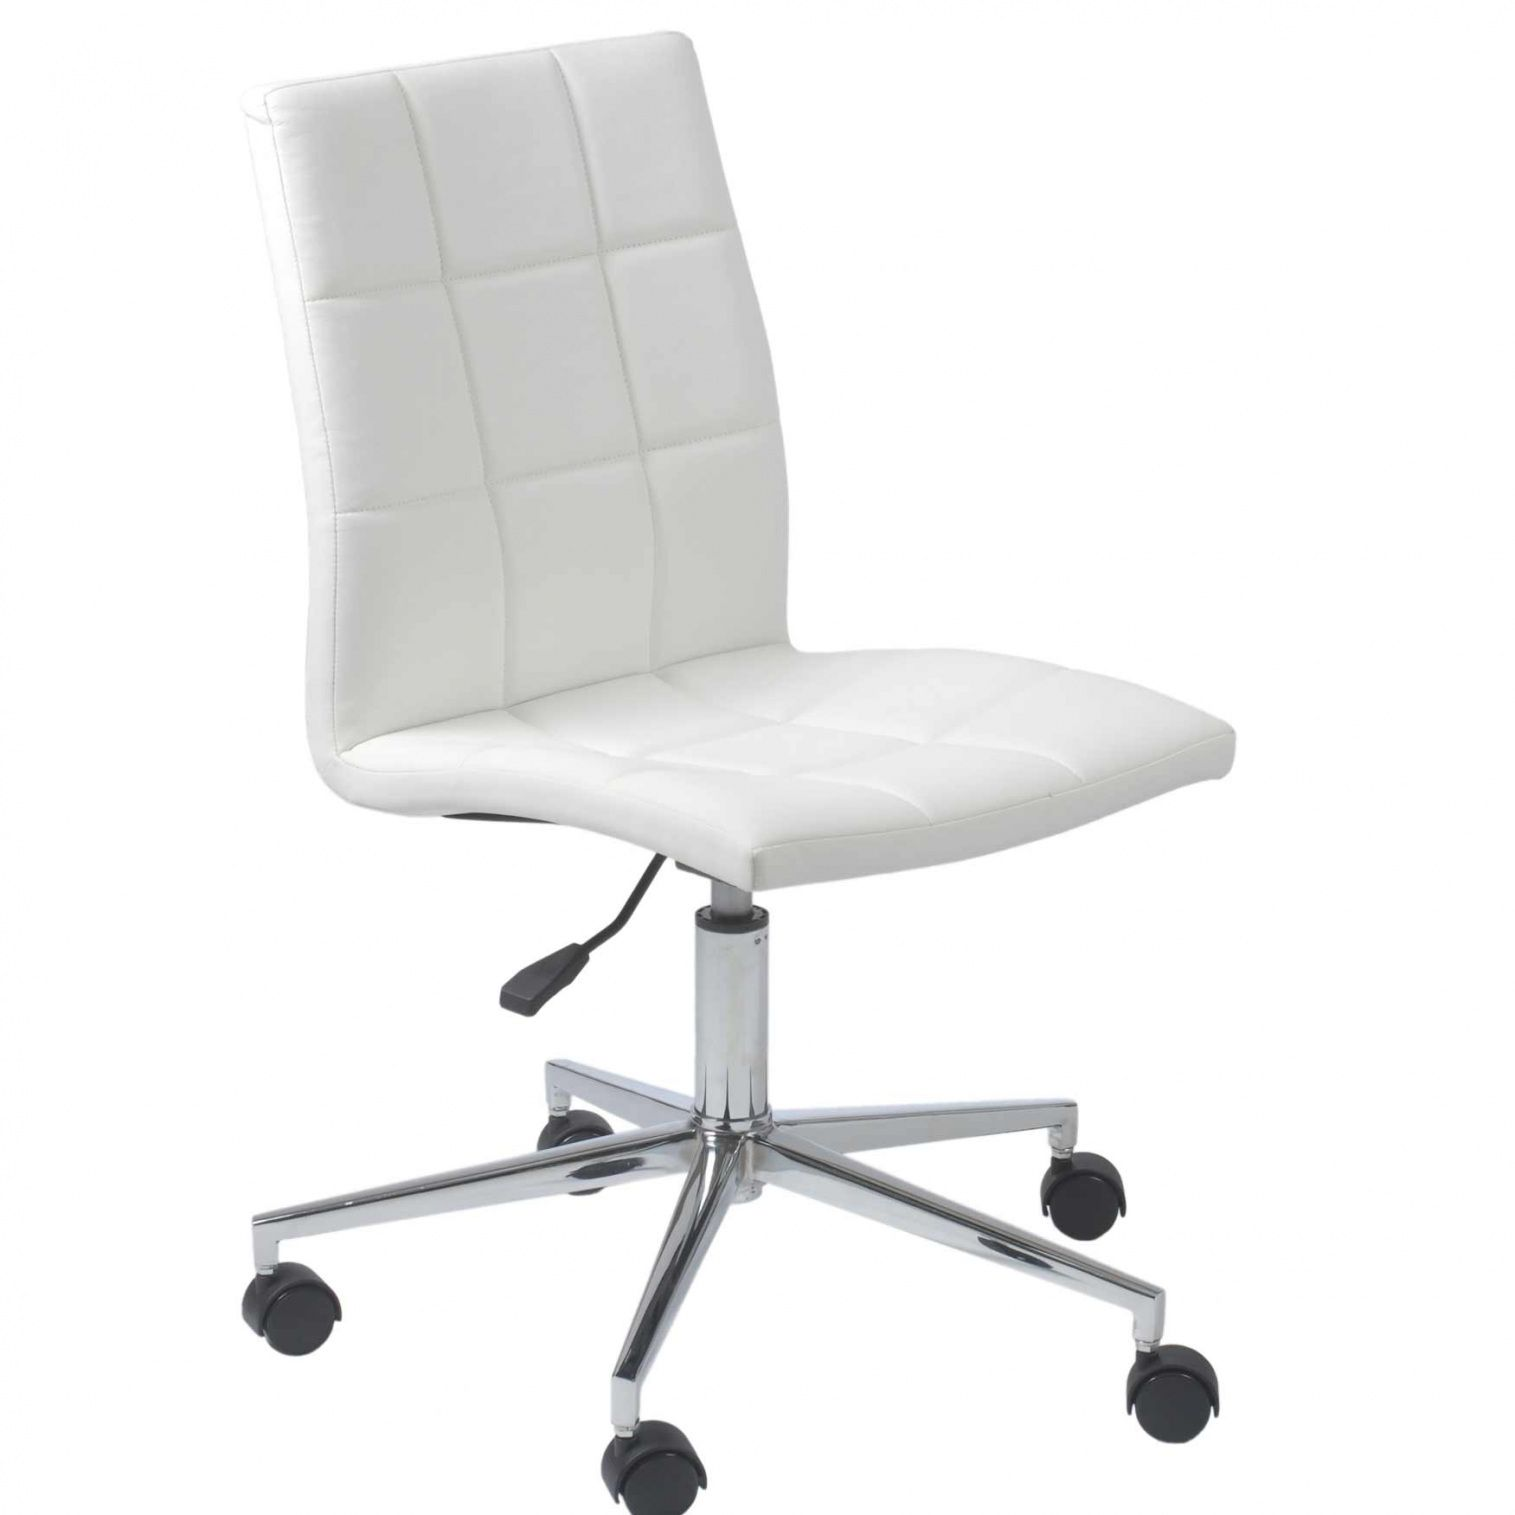 Armless Leather Office Chairs Furniture For Home Check More At Http Www Drjamesghoodblog